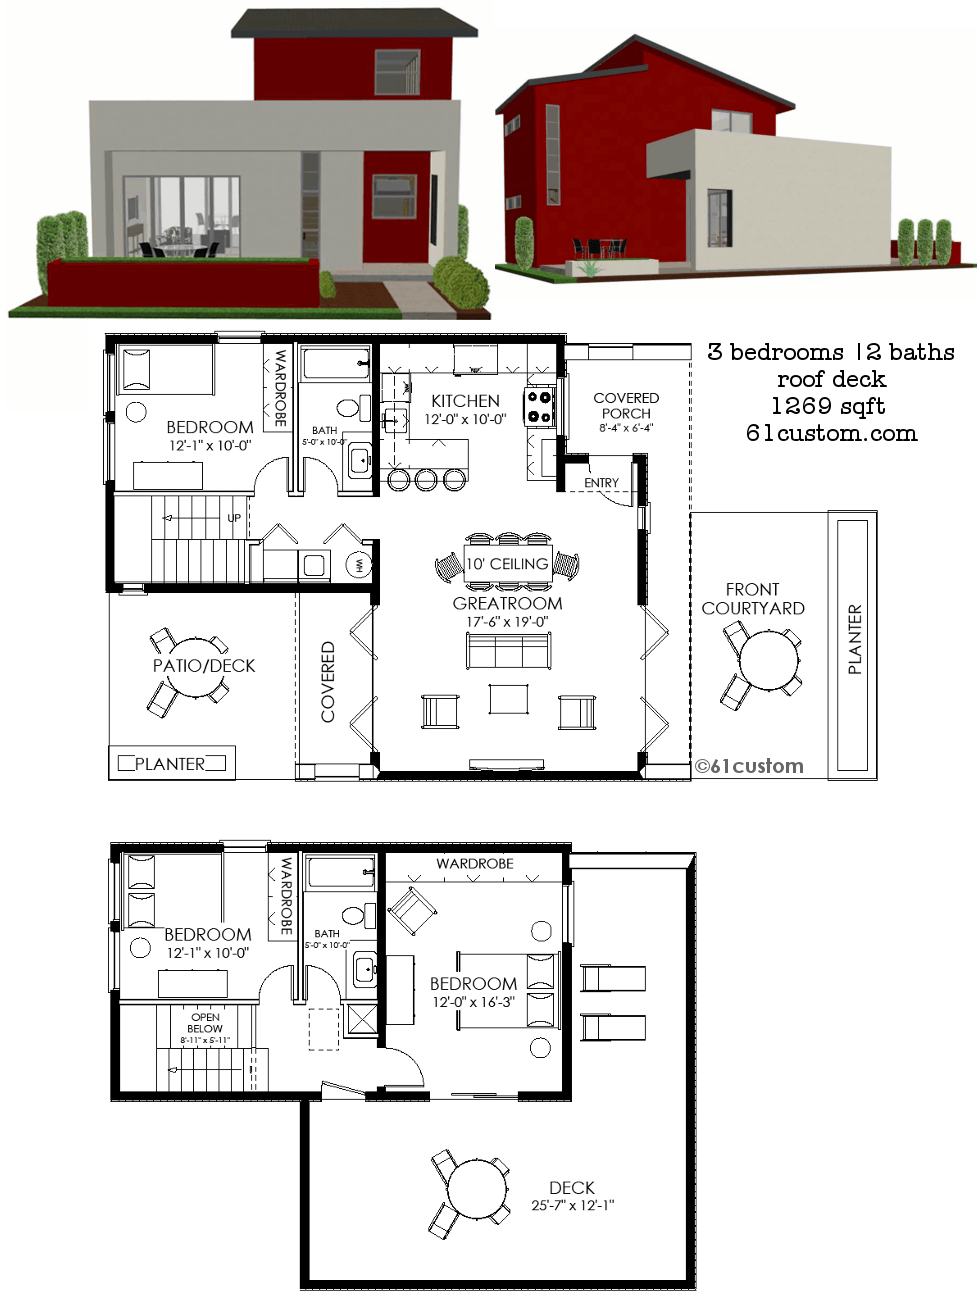 ontemporary Small House Plan 61custom ontemporary & Modern ... - ^